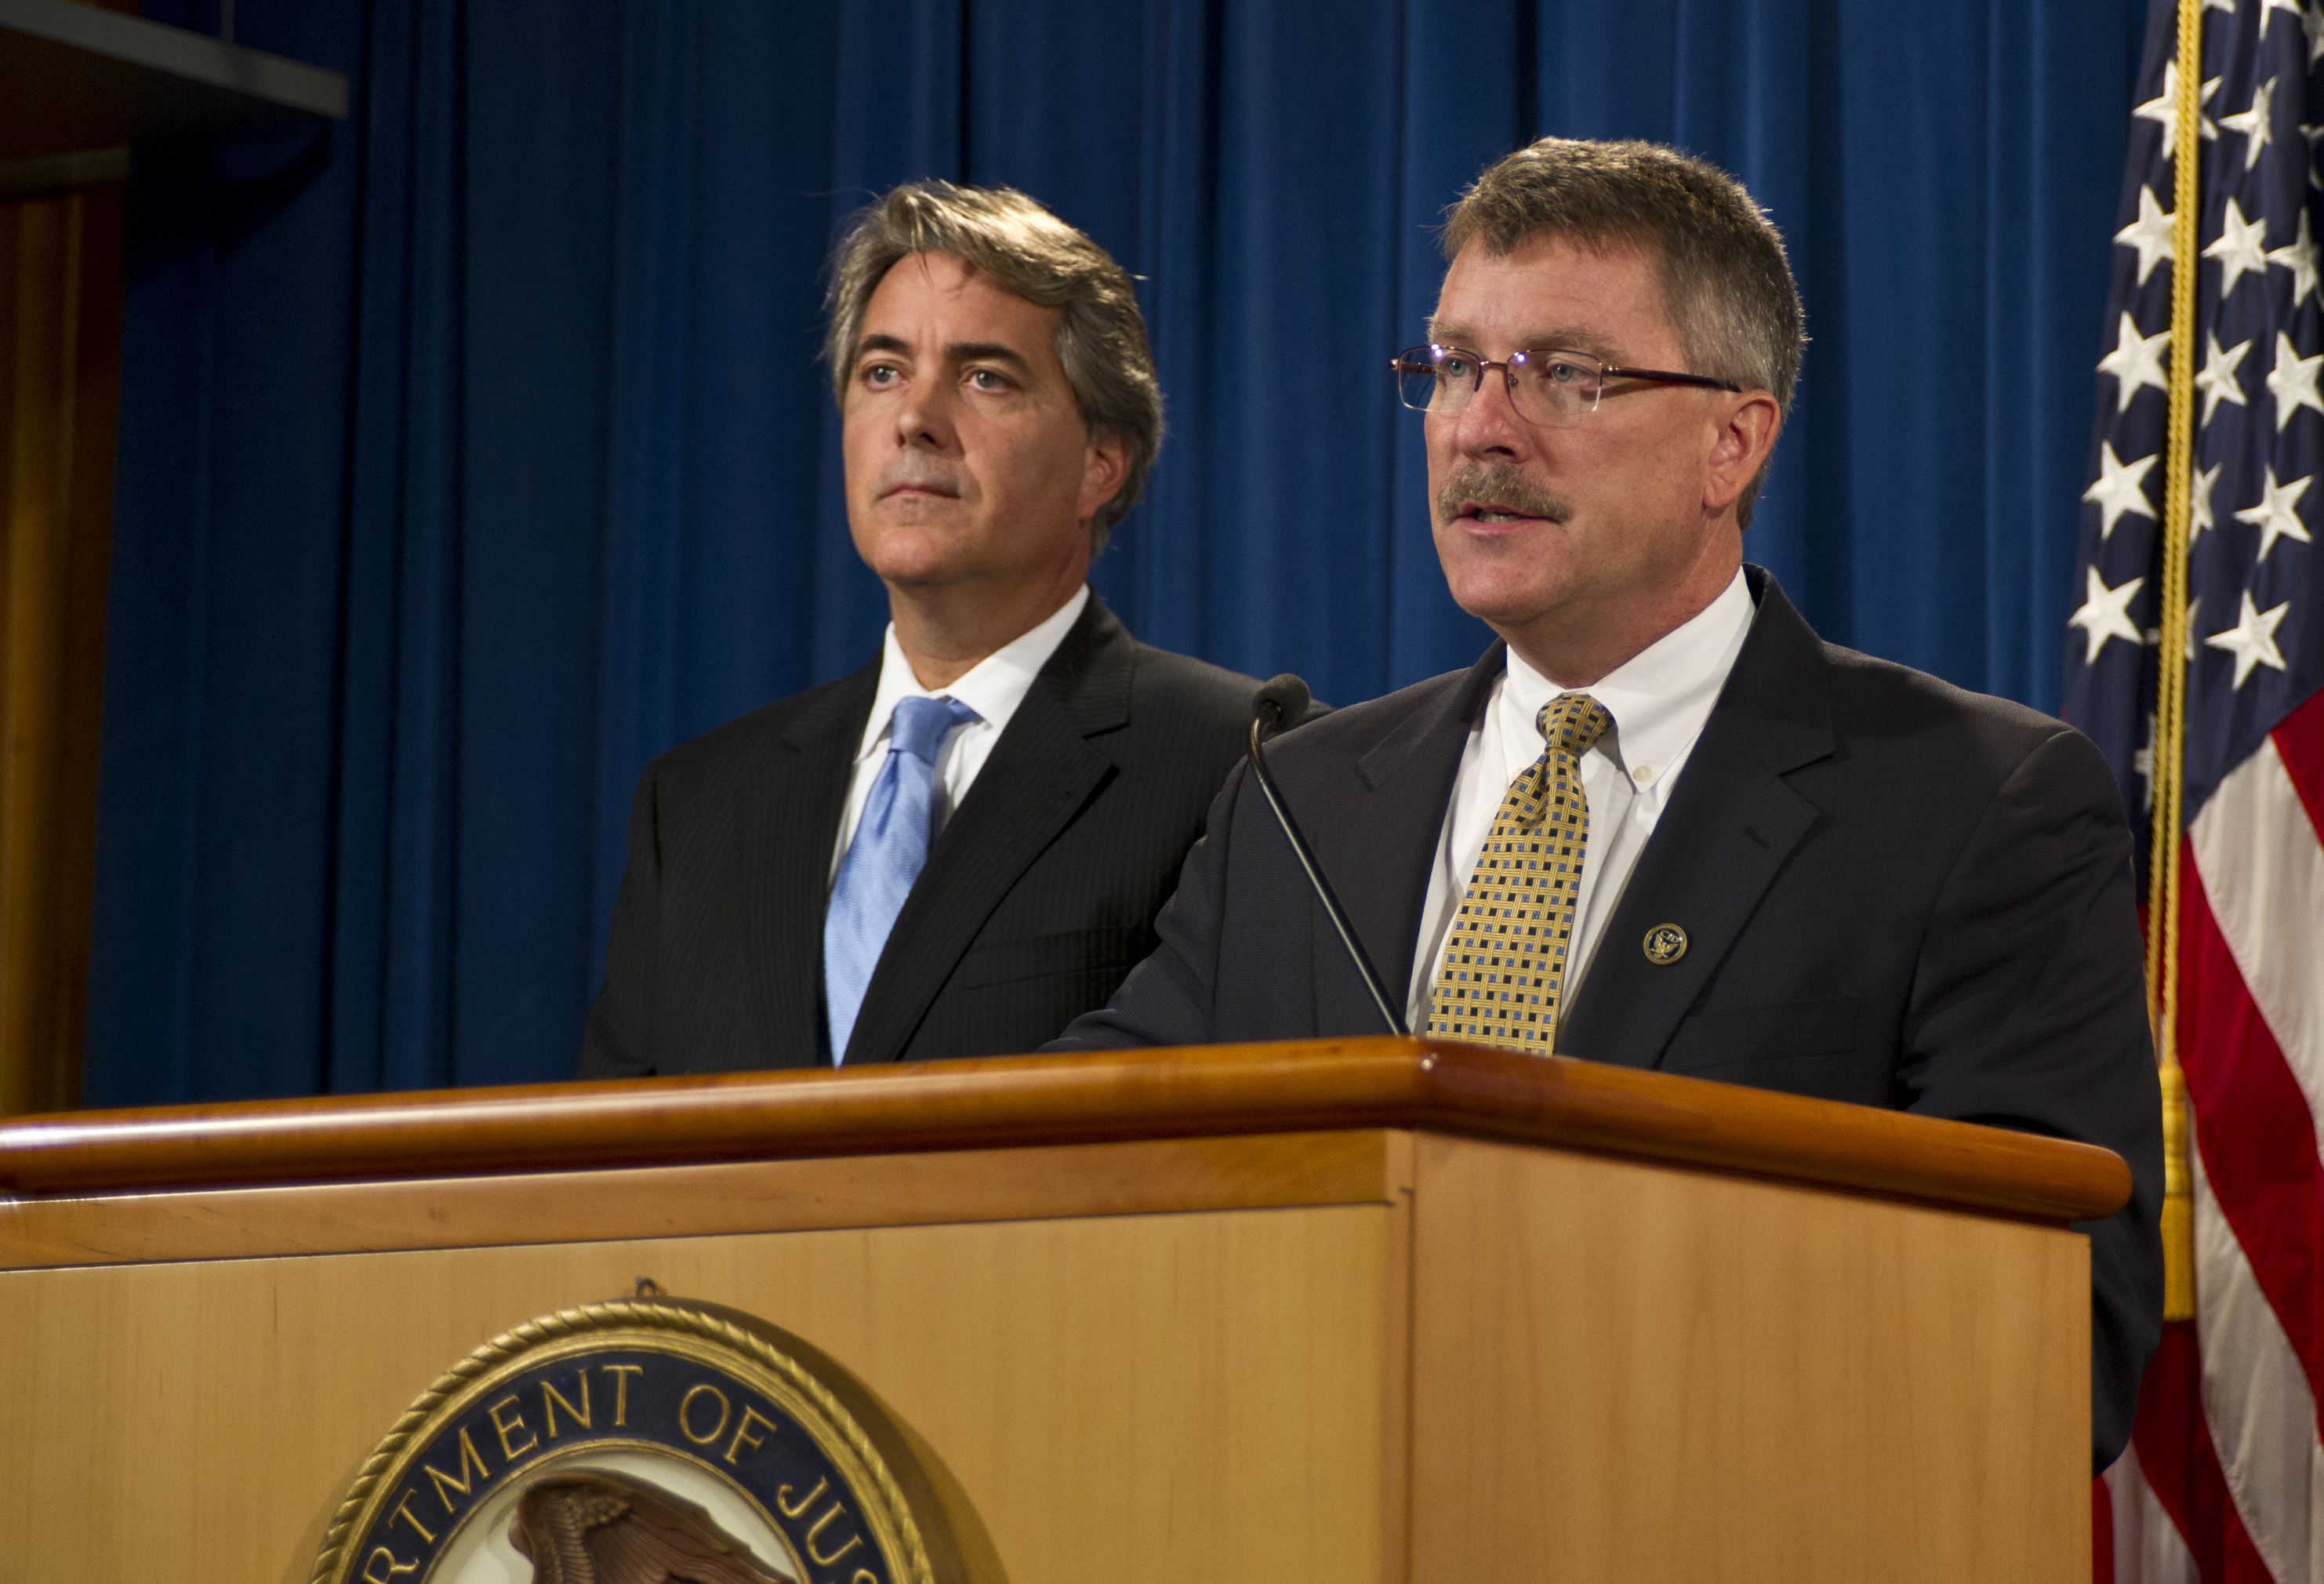 Stuck in the middle: the US struggles to prosecute senior executives